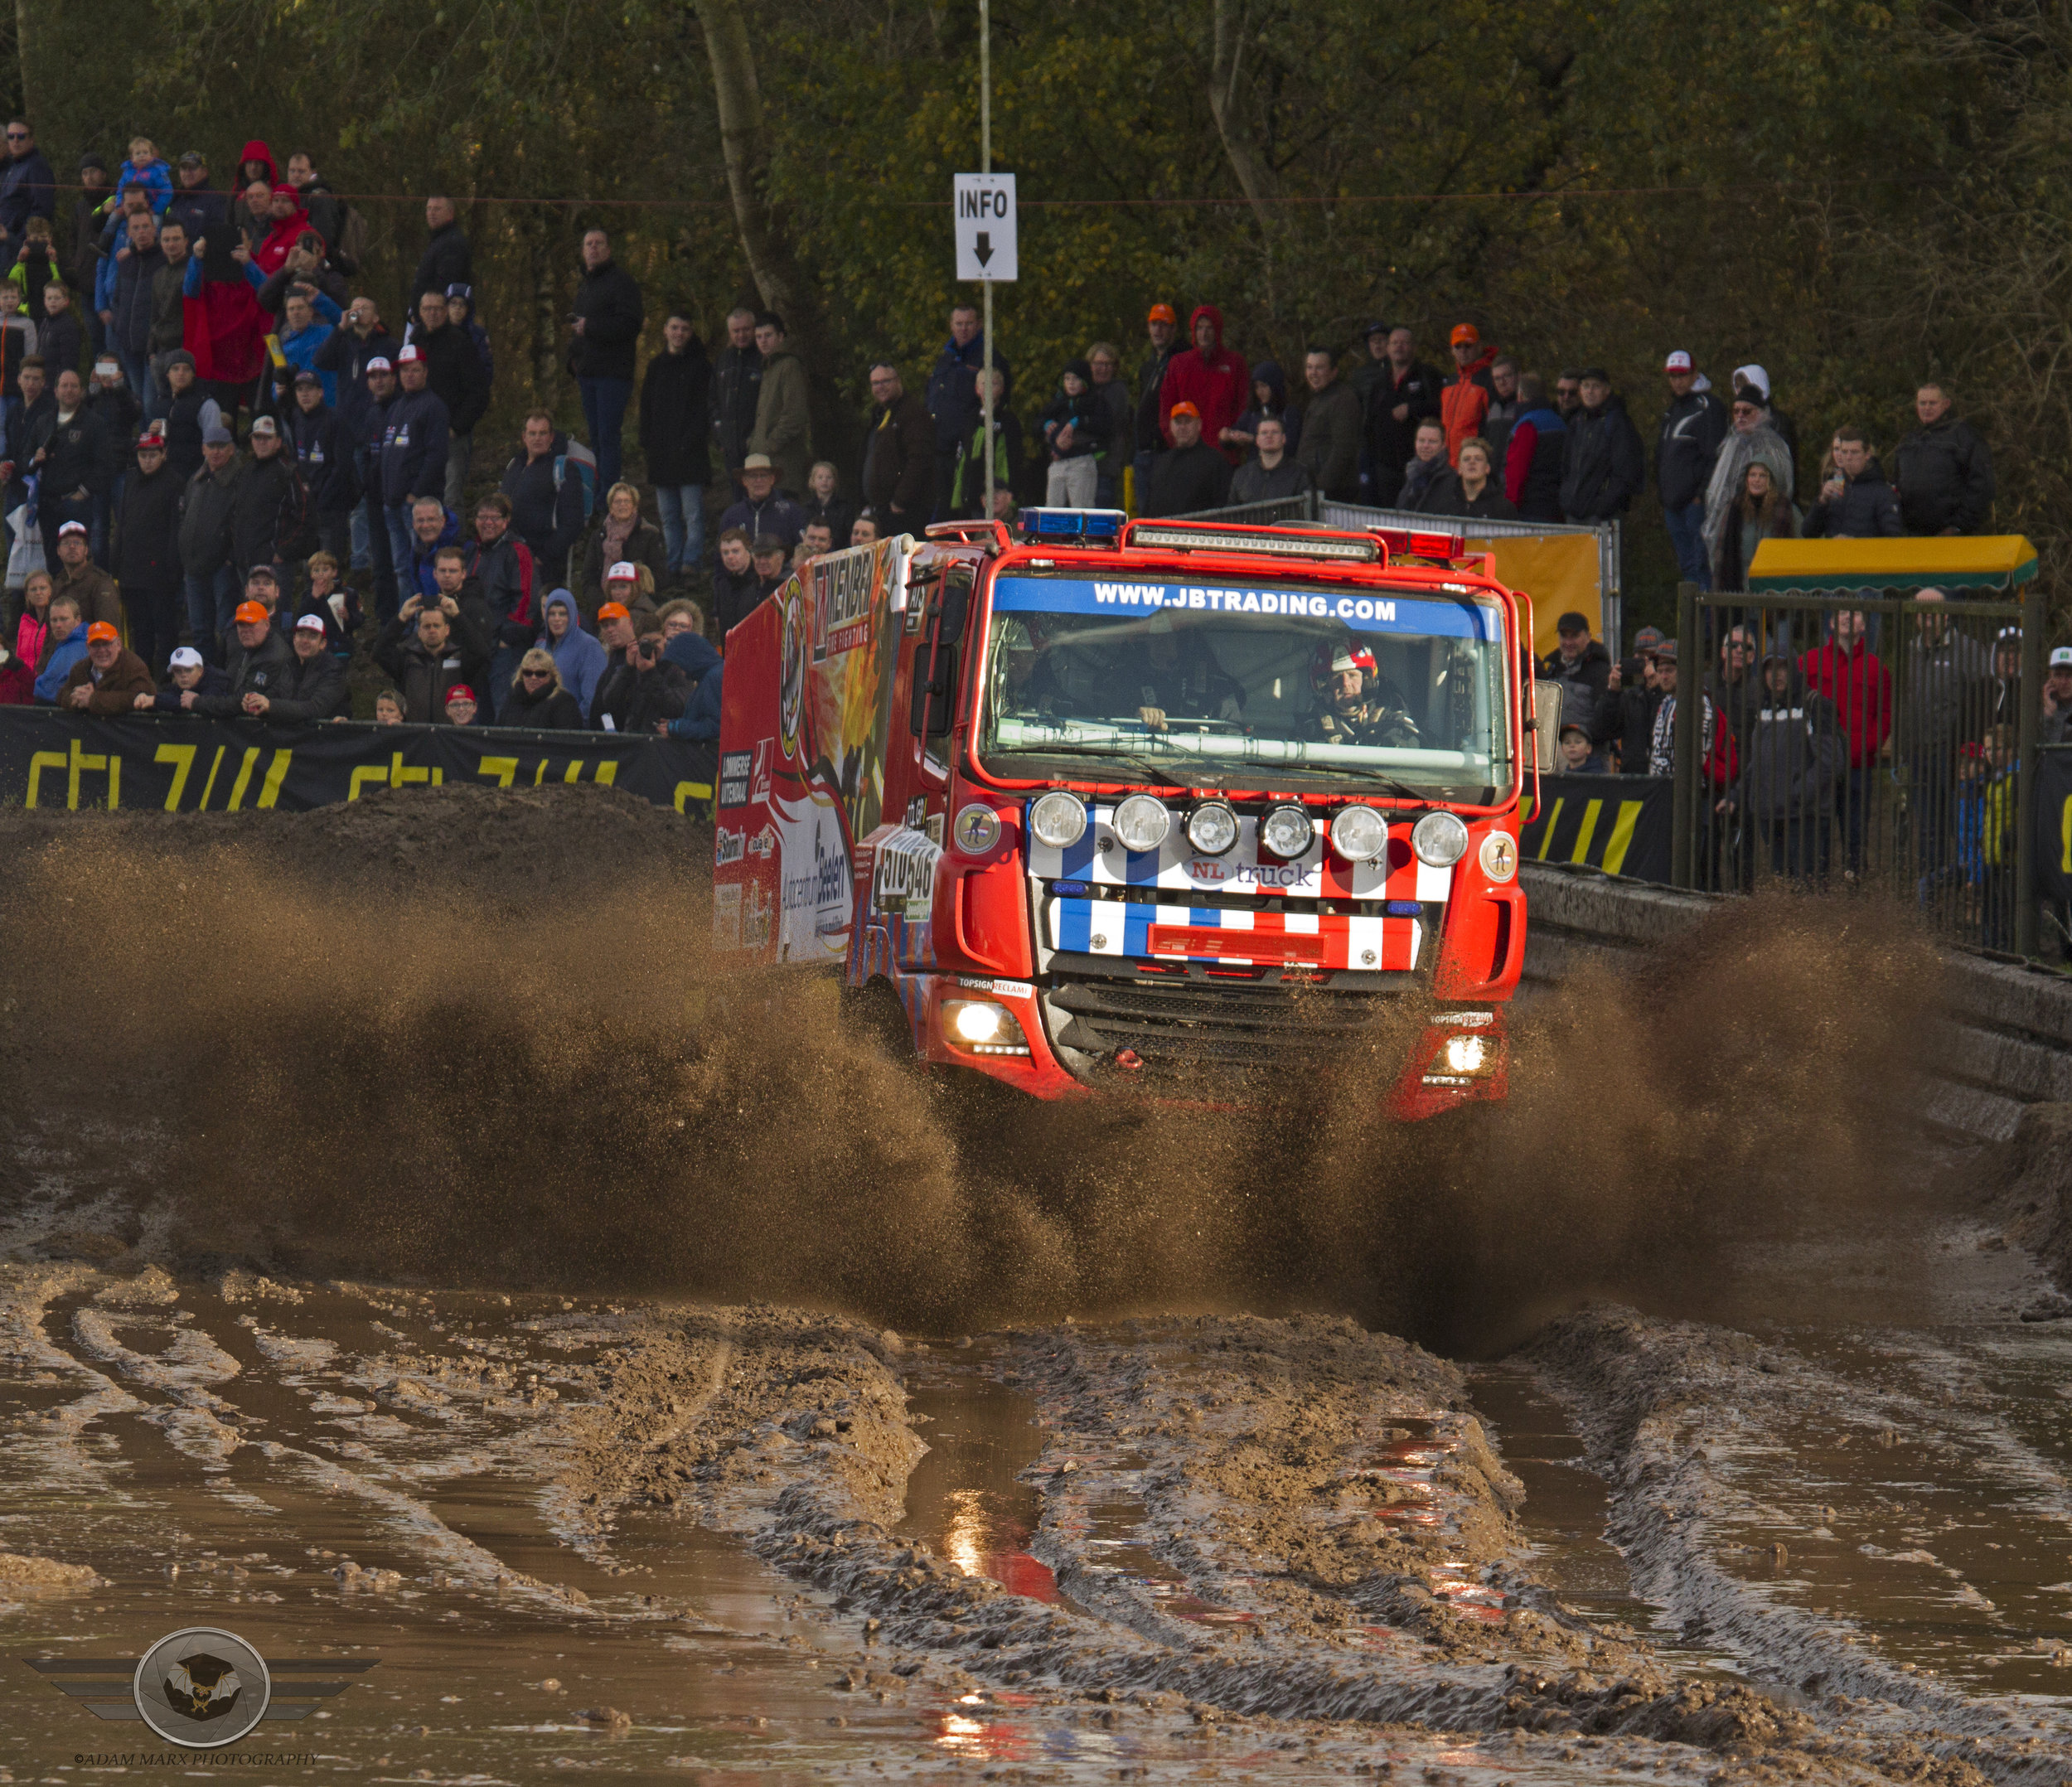 No fire to big or mudpool to deep for the firetruck of Richard de Groot.